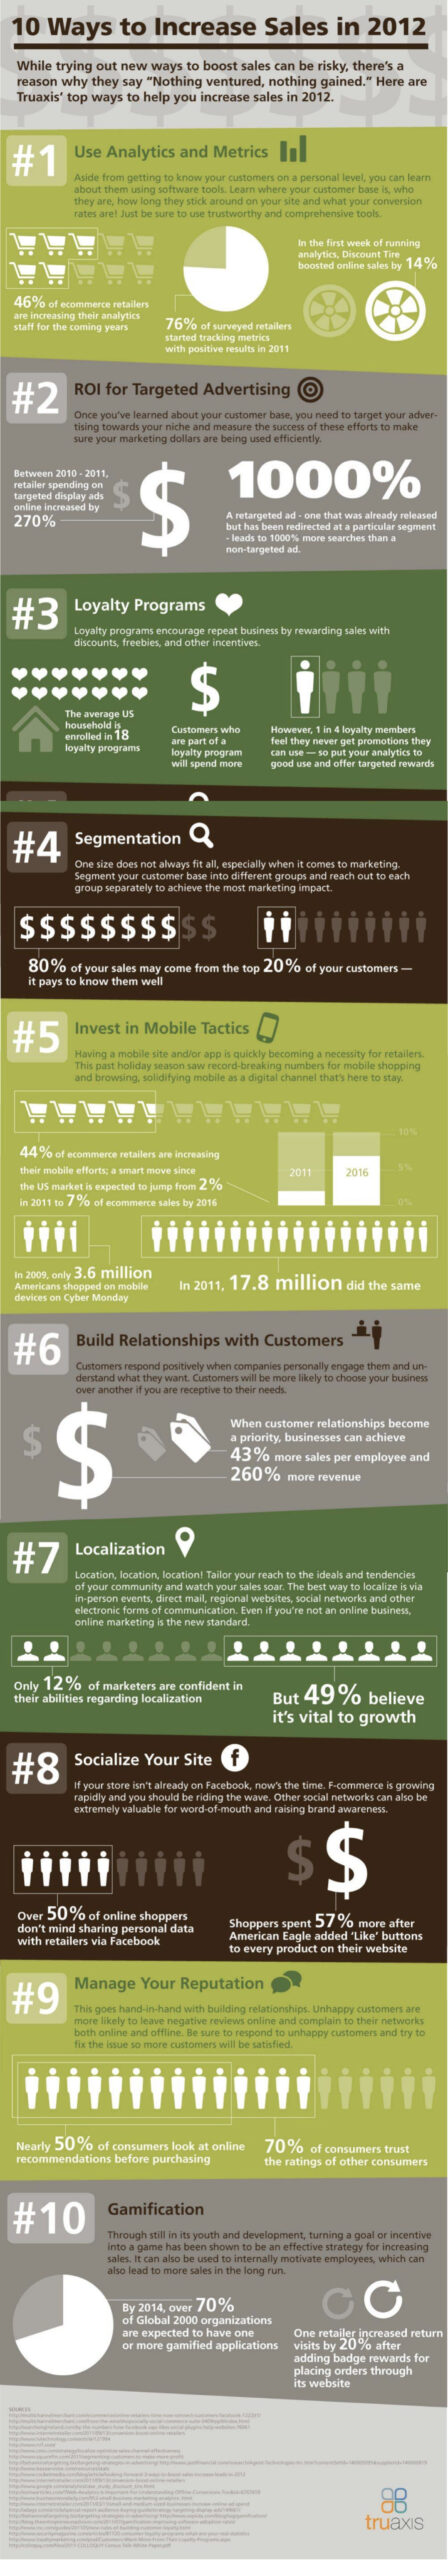 10 Ways To Increase Sales Infographic